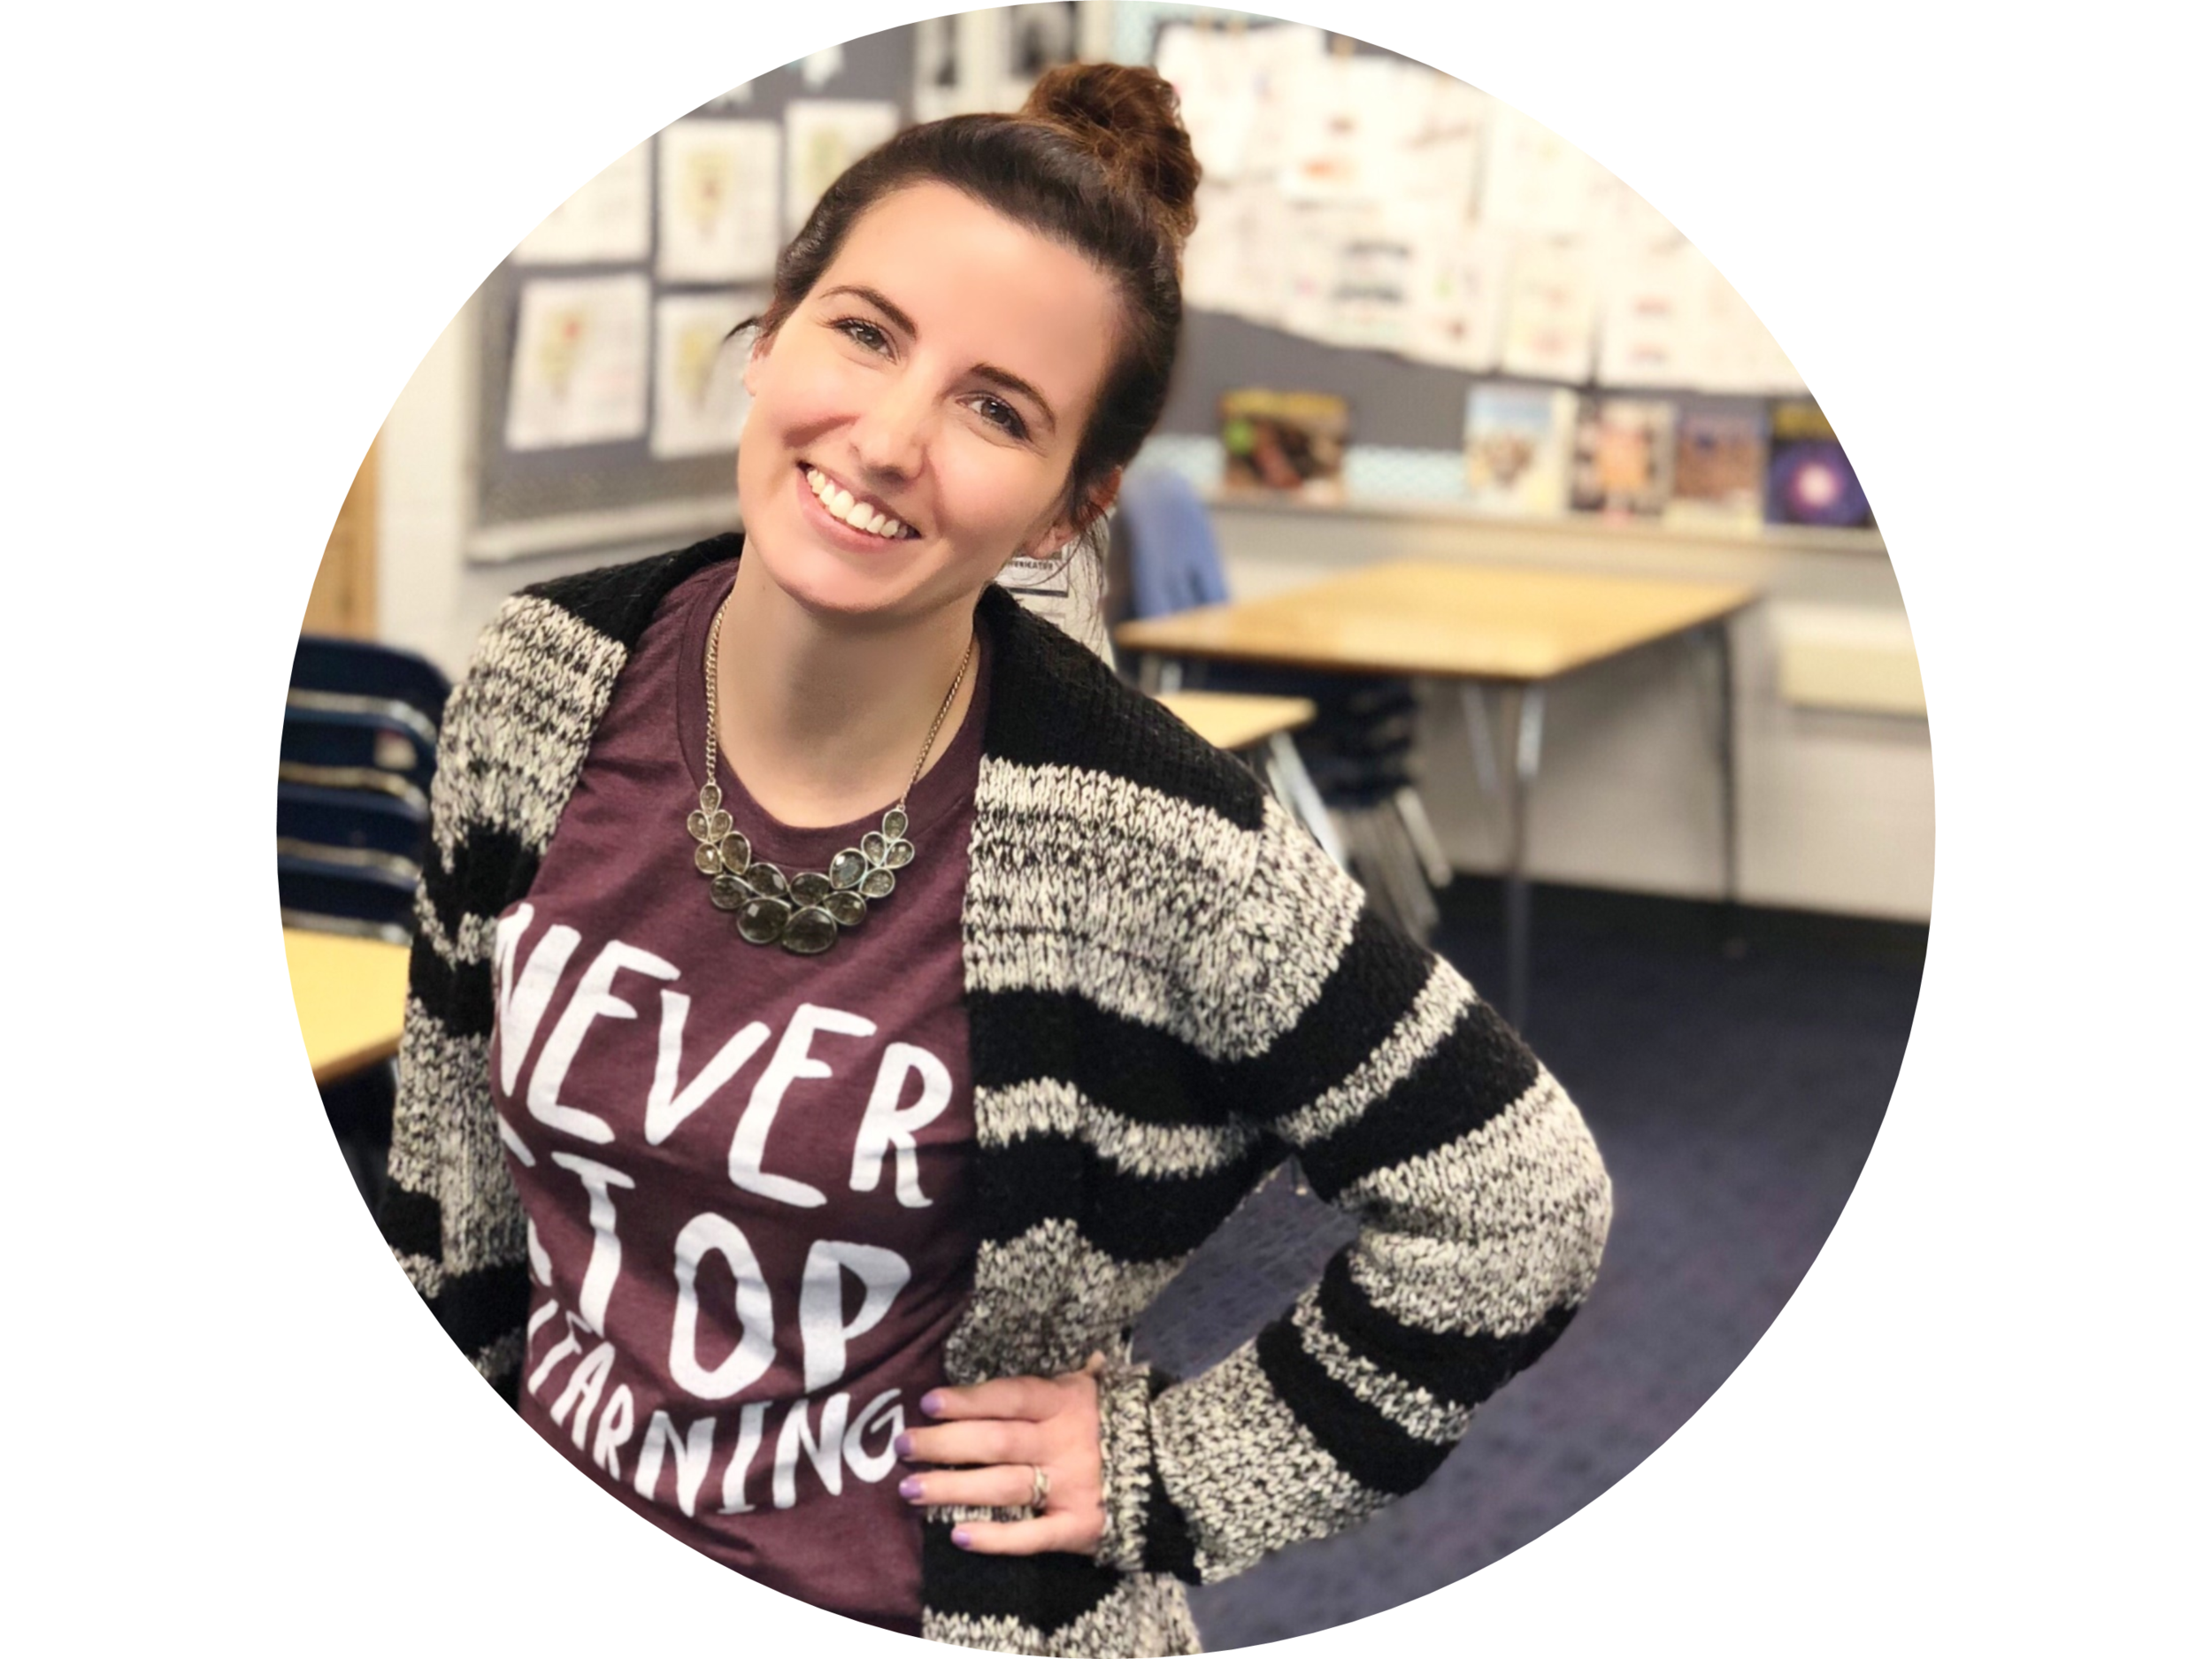 Hi, I'm Shana. - I'm a middle school language arts and journalism teacher, Google for Education Certified Trainer, EdTech enthusiast, and media literacy advocate.